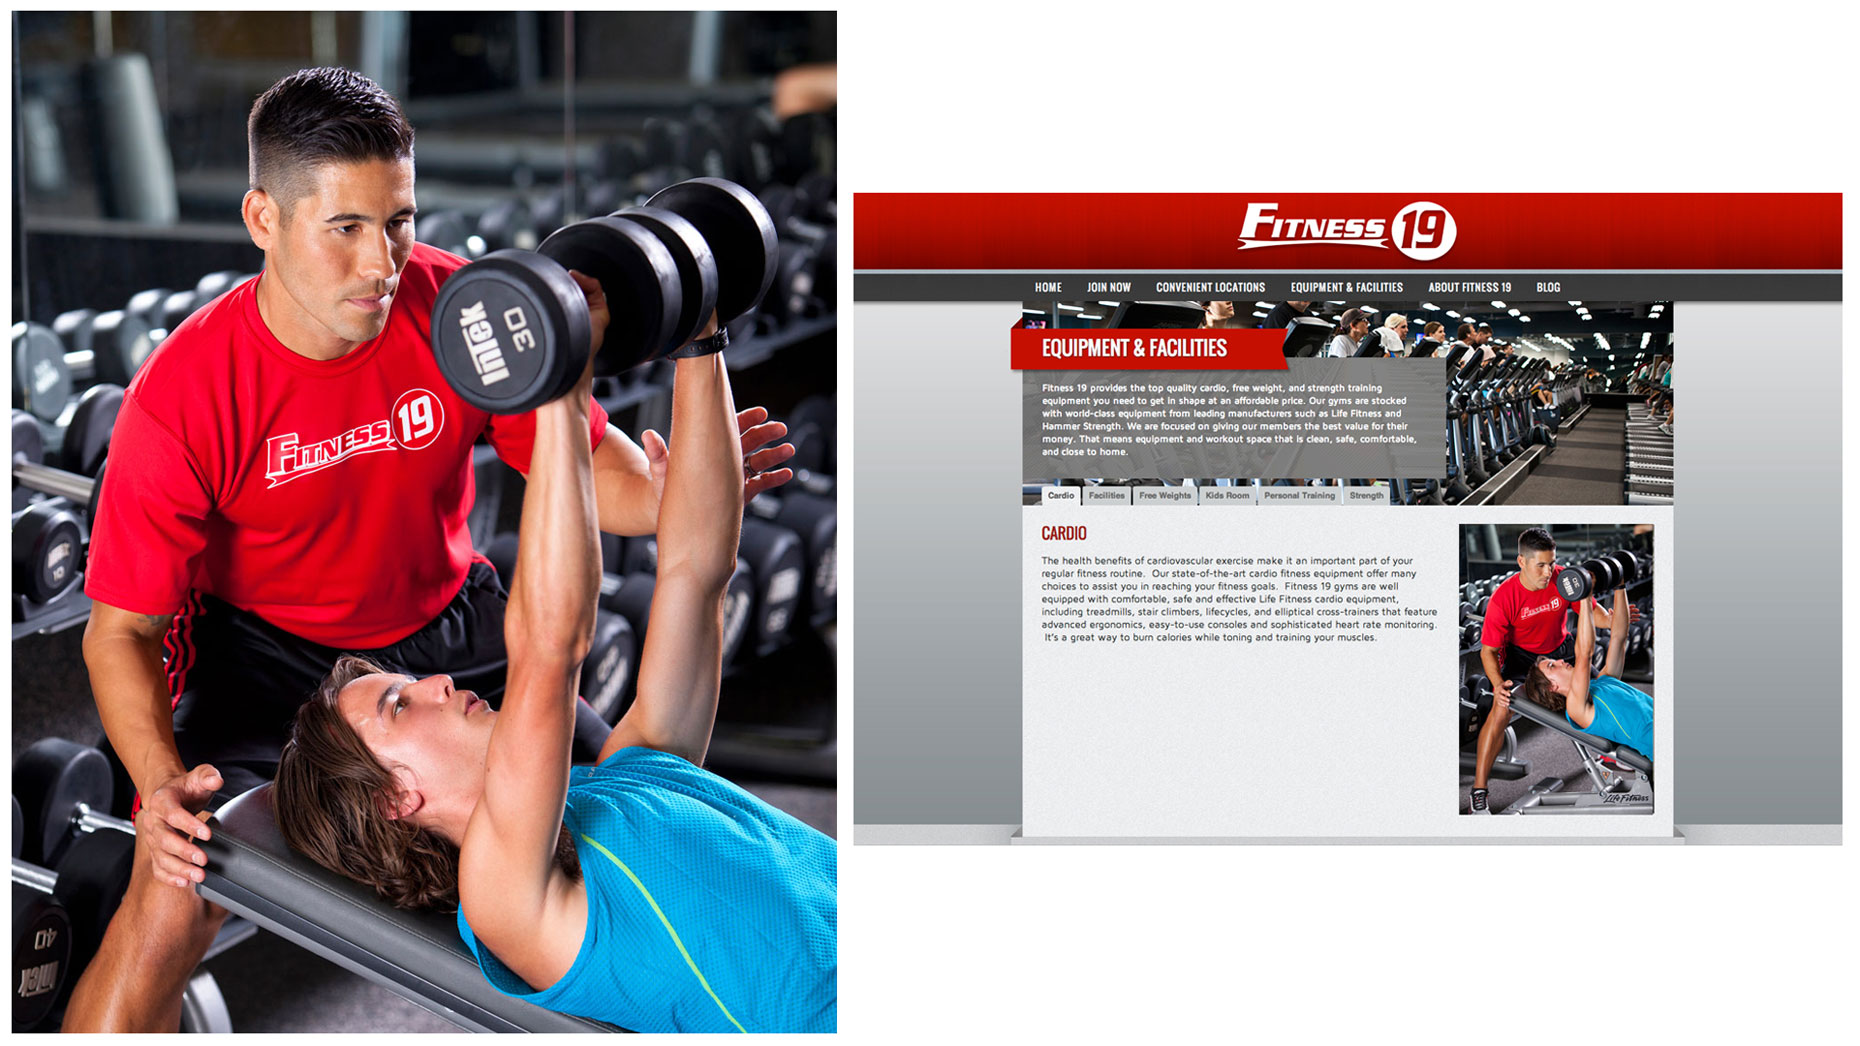 Fitness 19 Promotional Website Photography